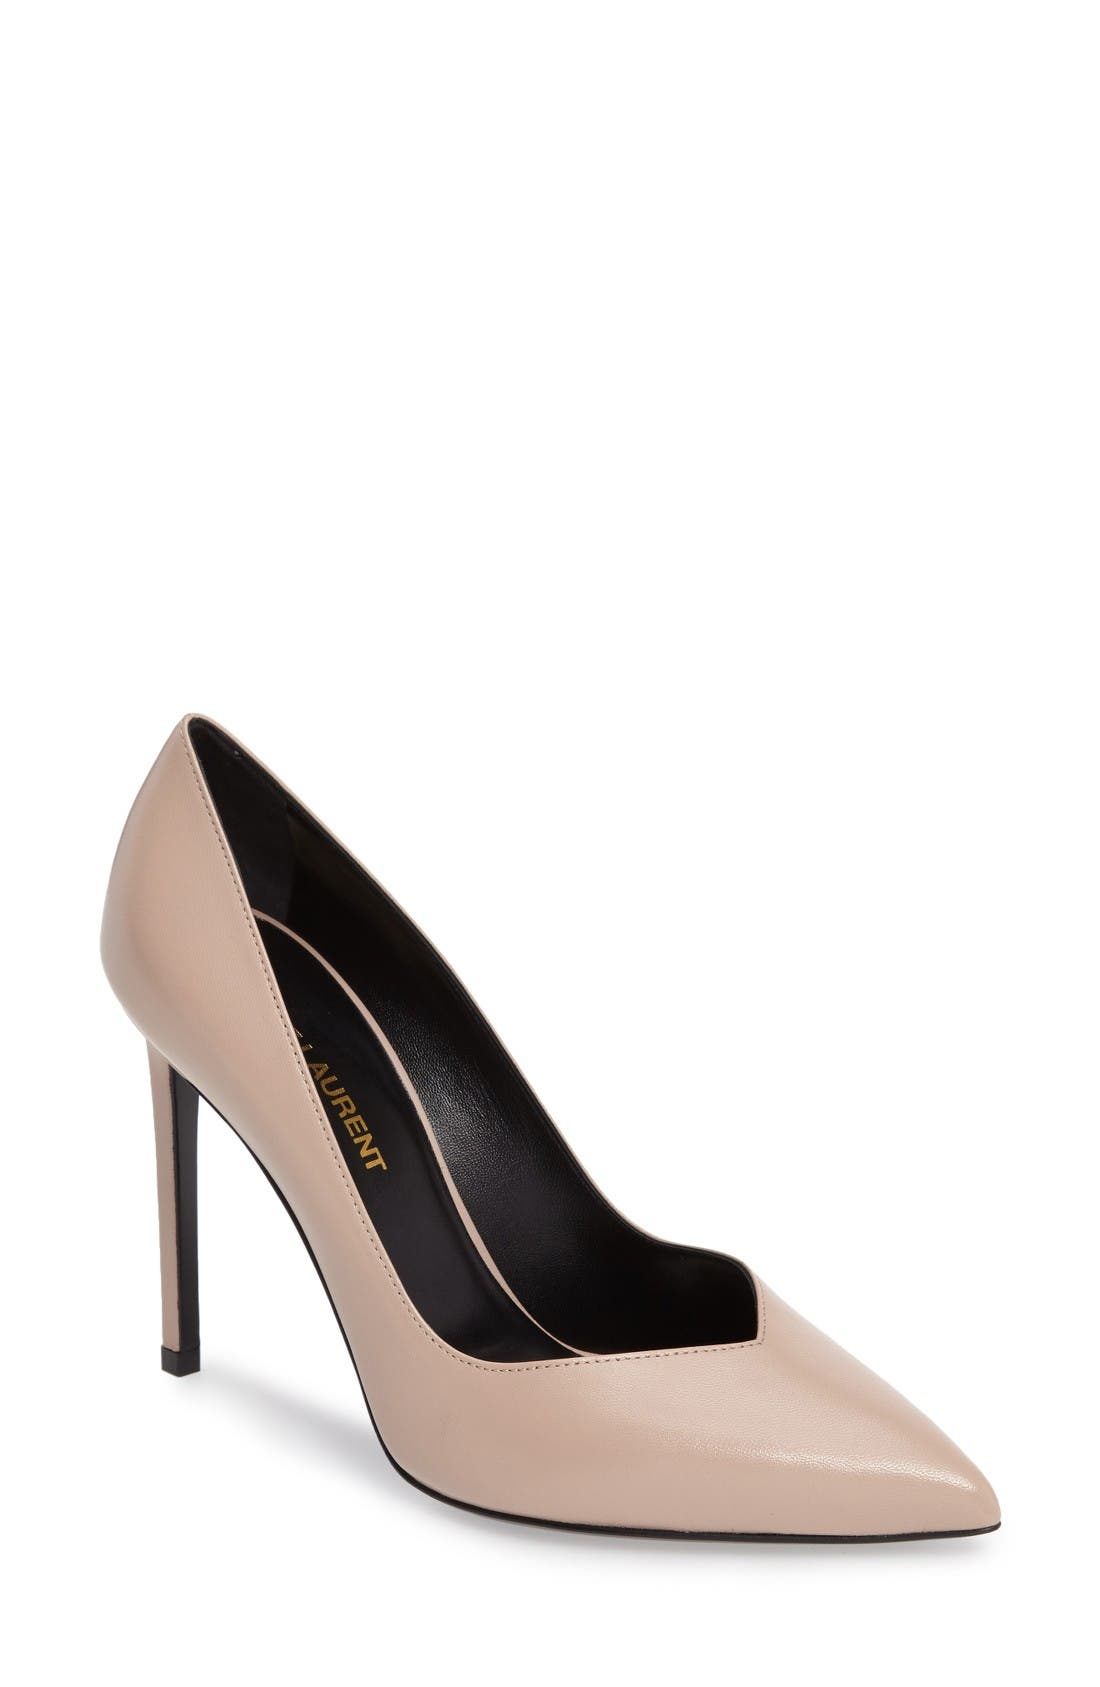 Alternate Image 1 Selected - Saint Laurent Pointy Toe Pump (Women)